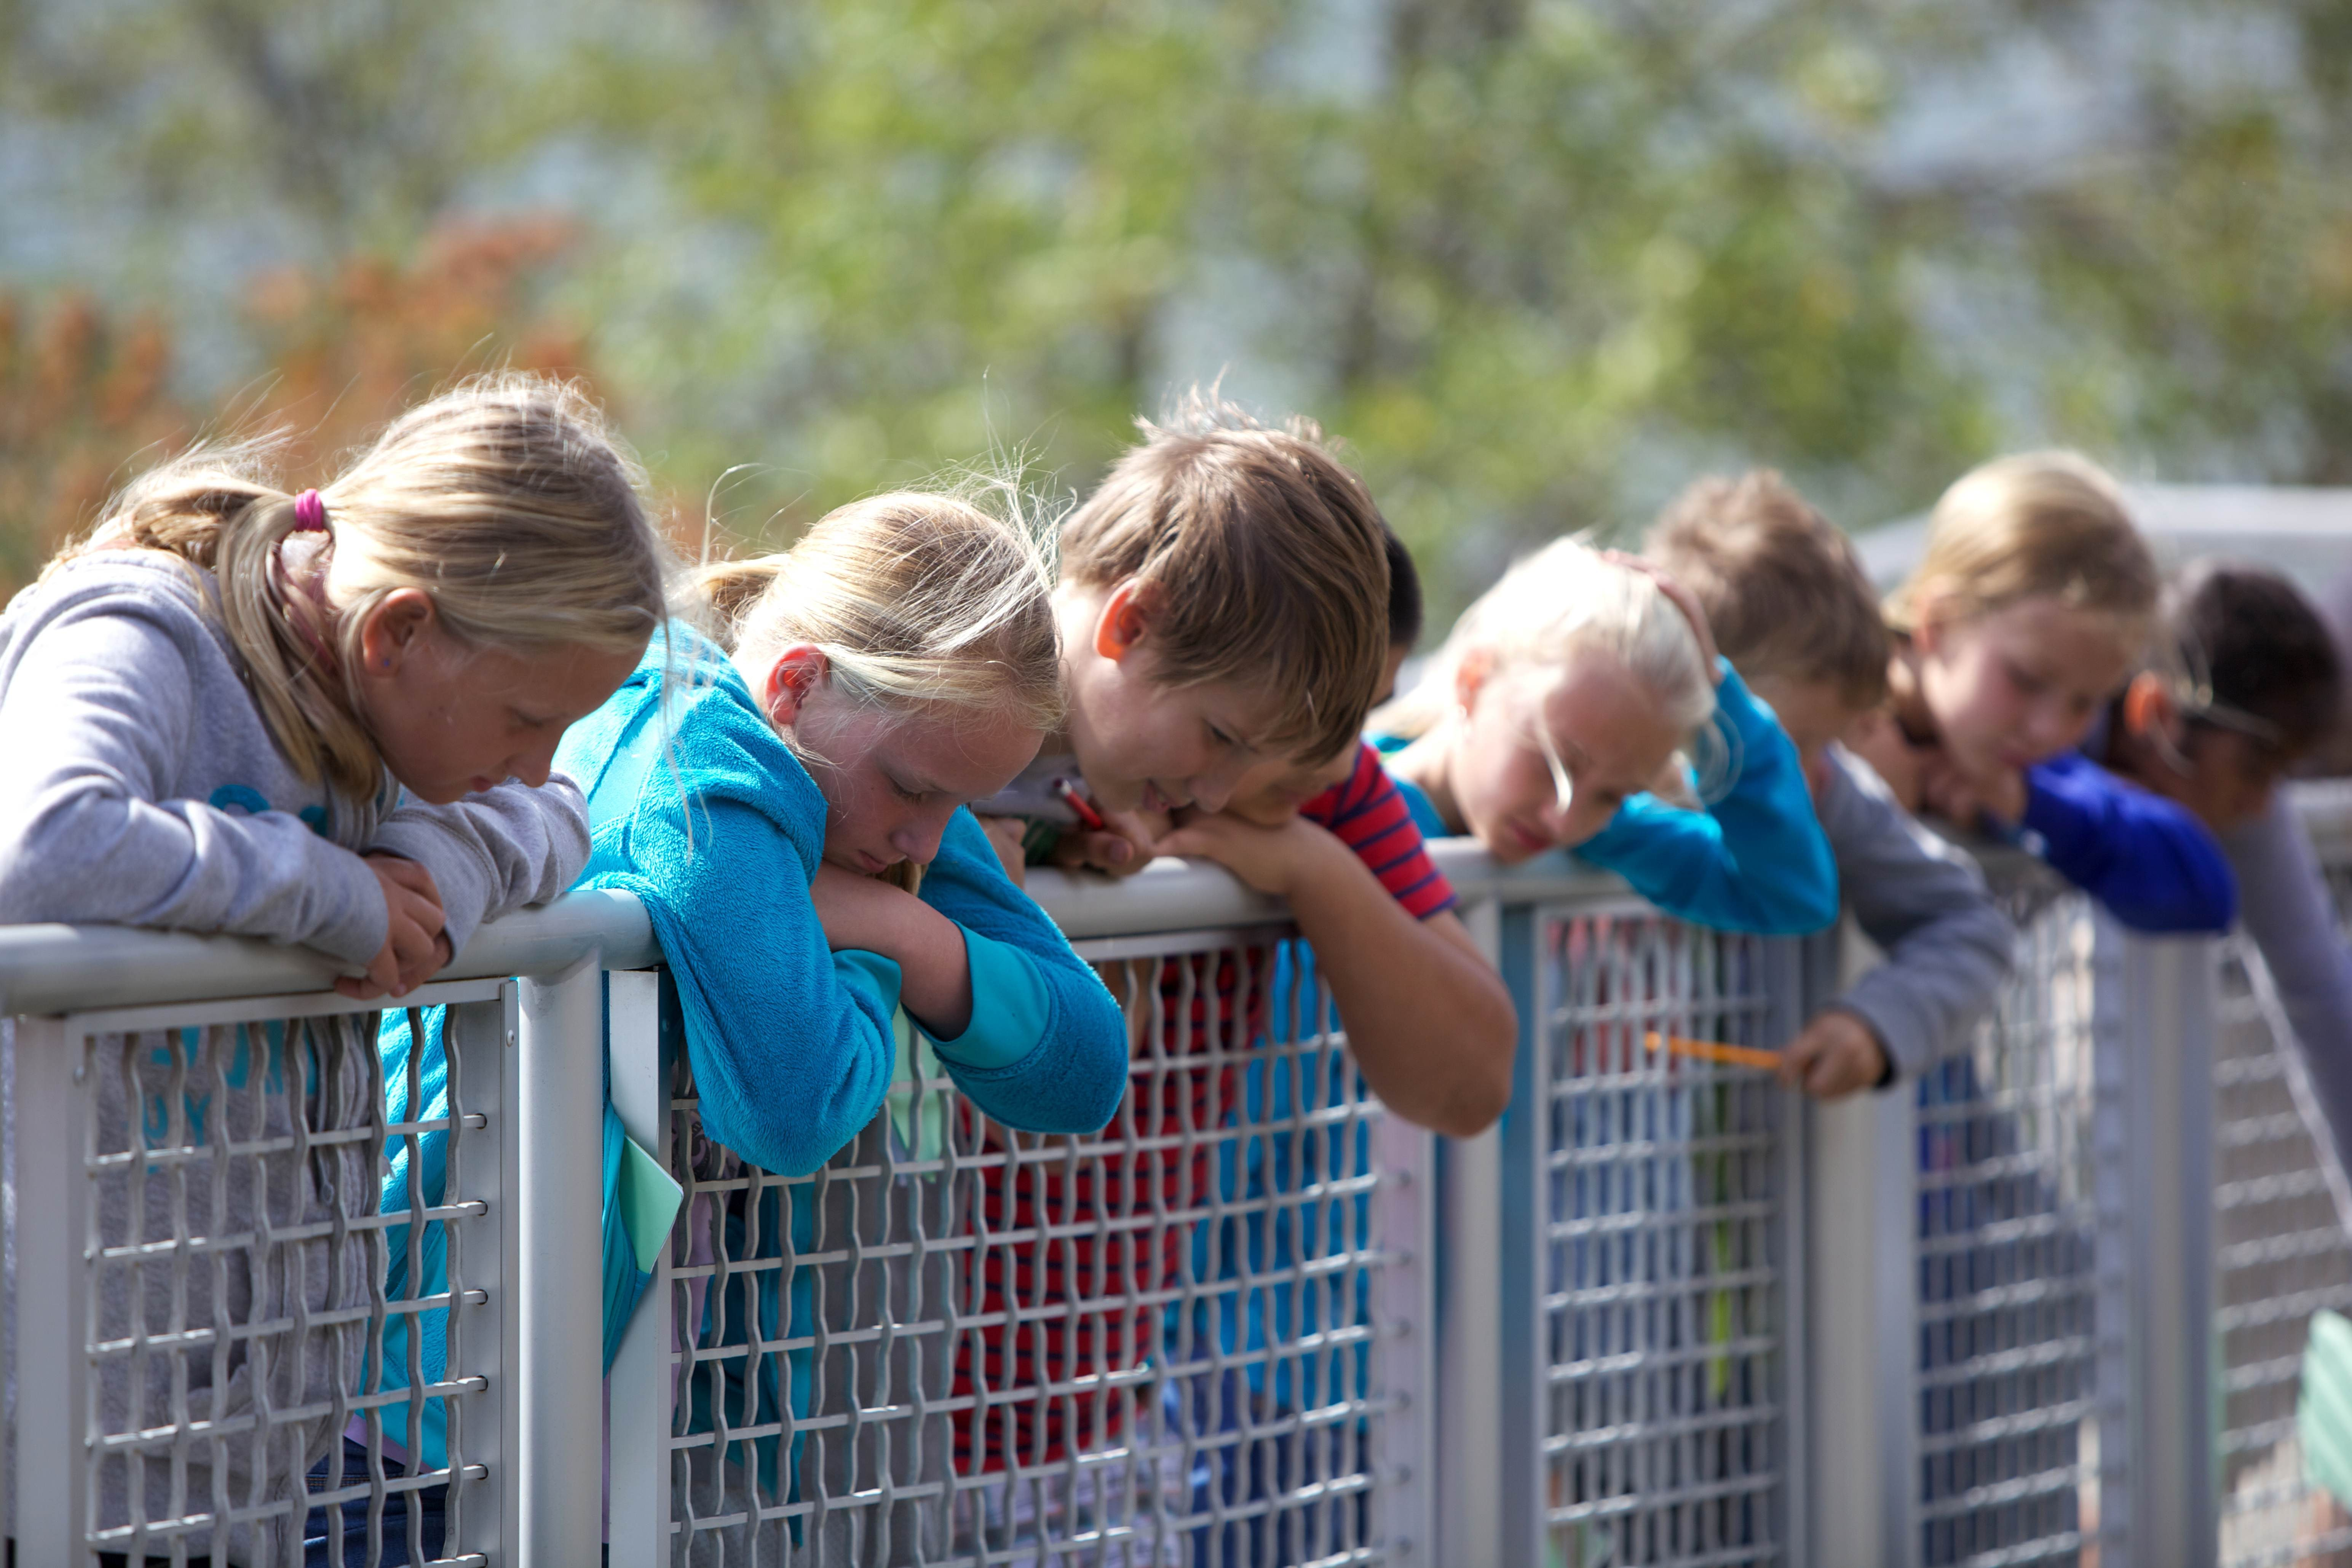 Free picture: children, boys, girls, fence